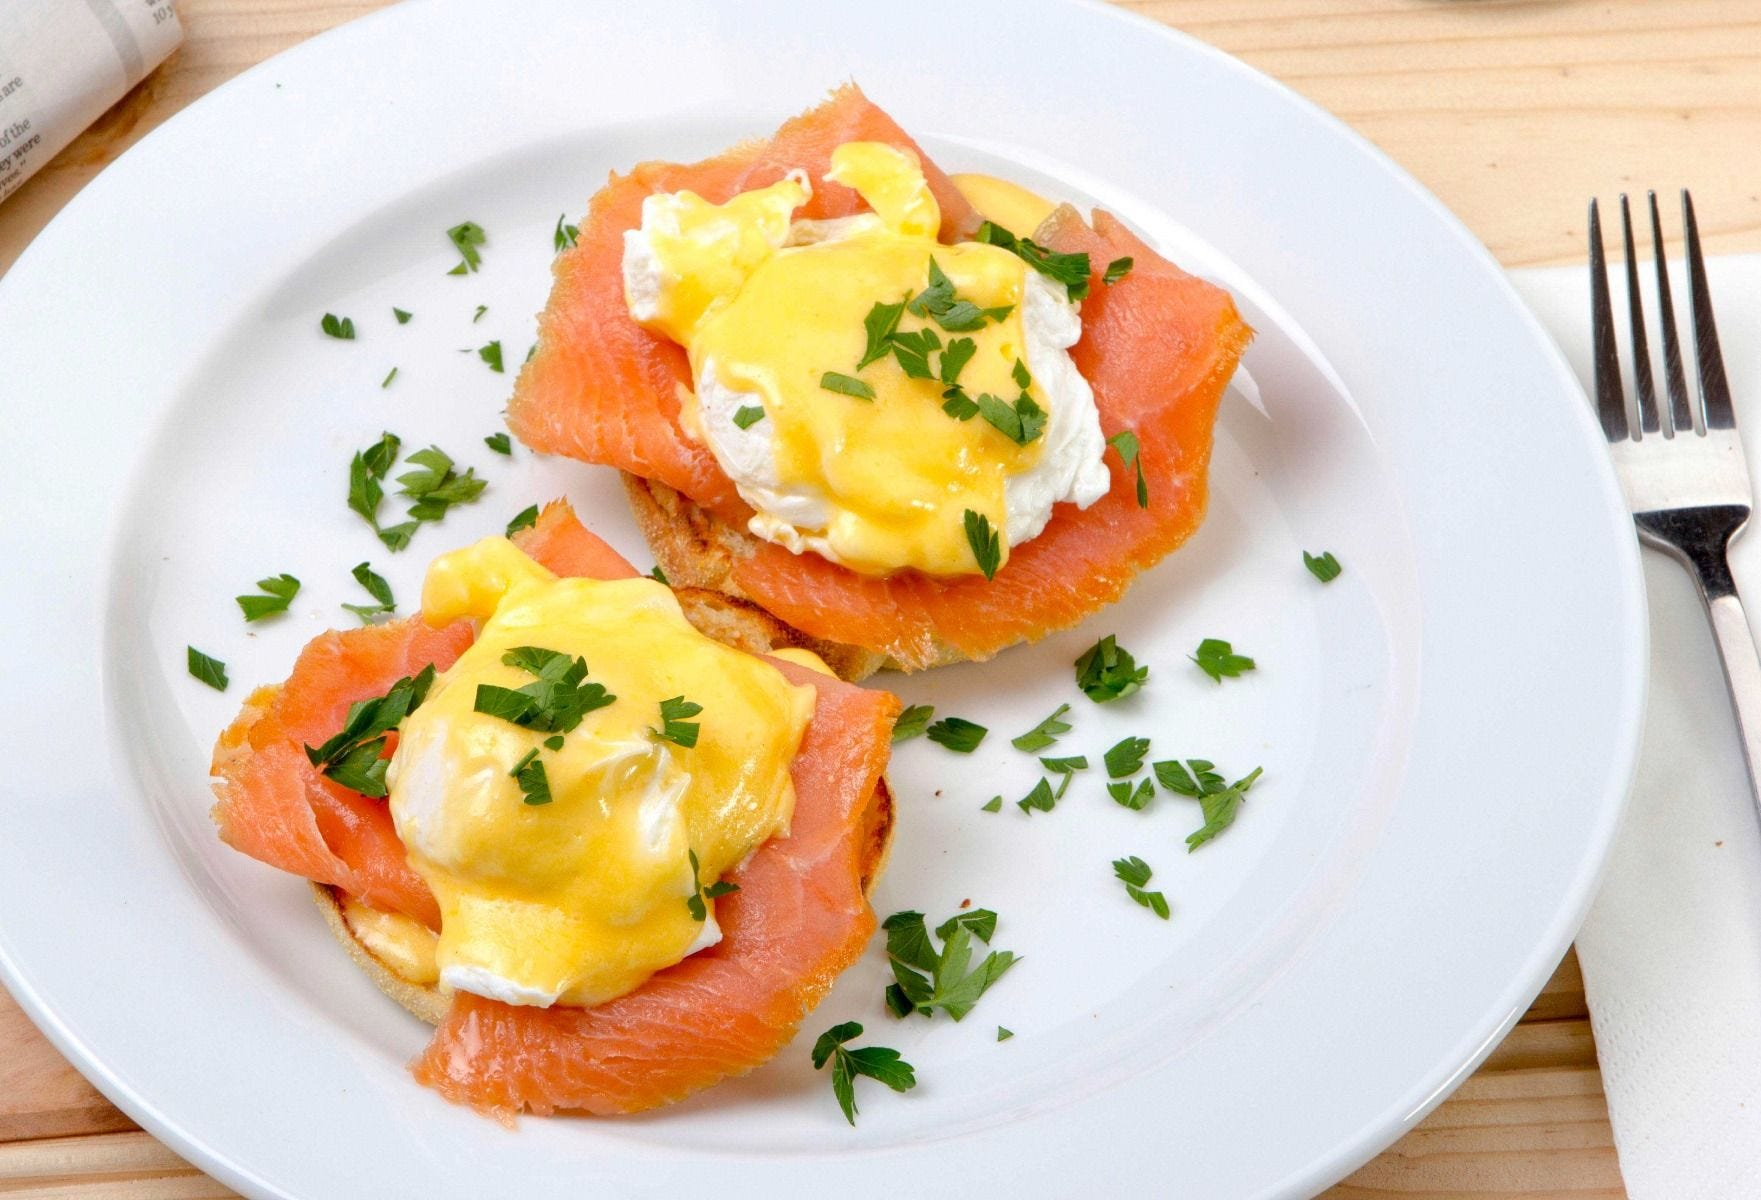 Bordeaux Salmon Benedict with Lemon Hollandaise recipe.